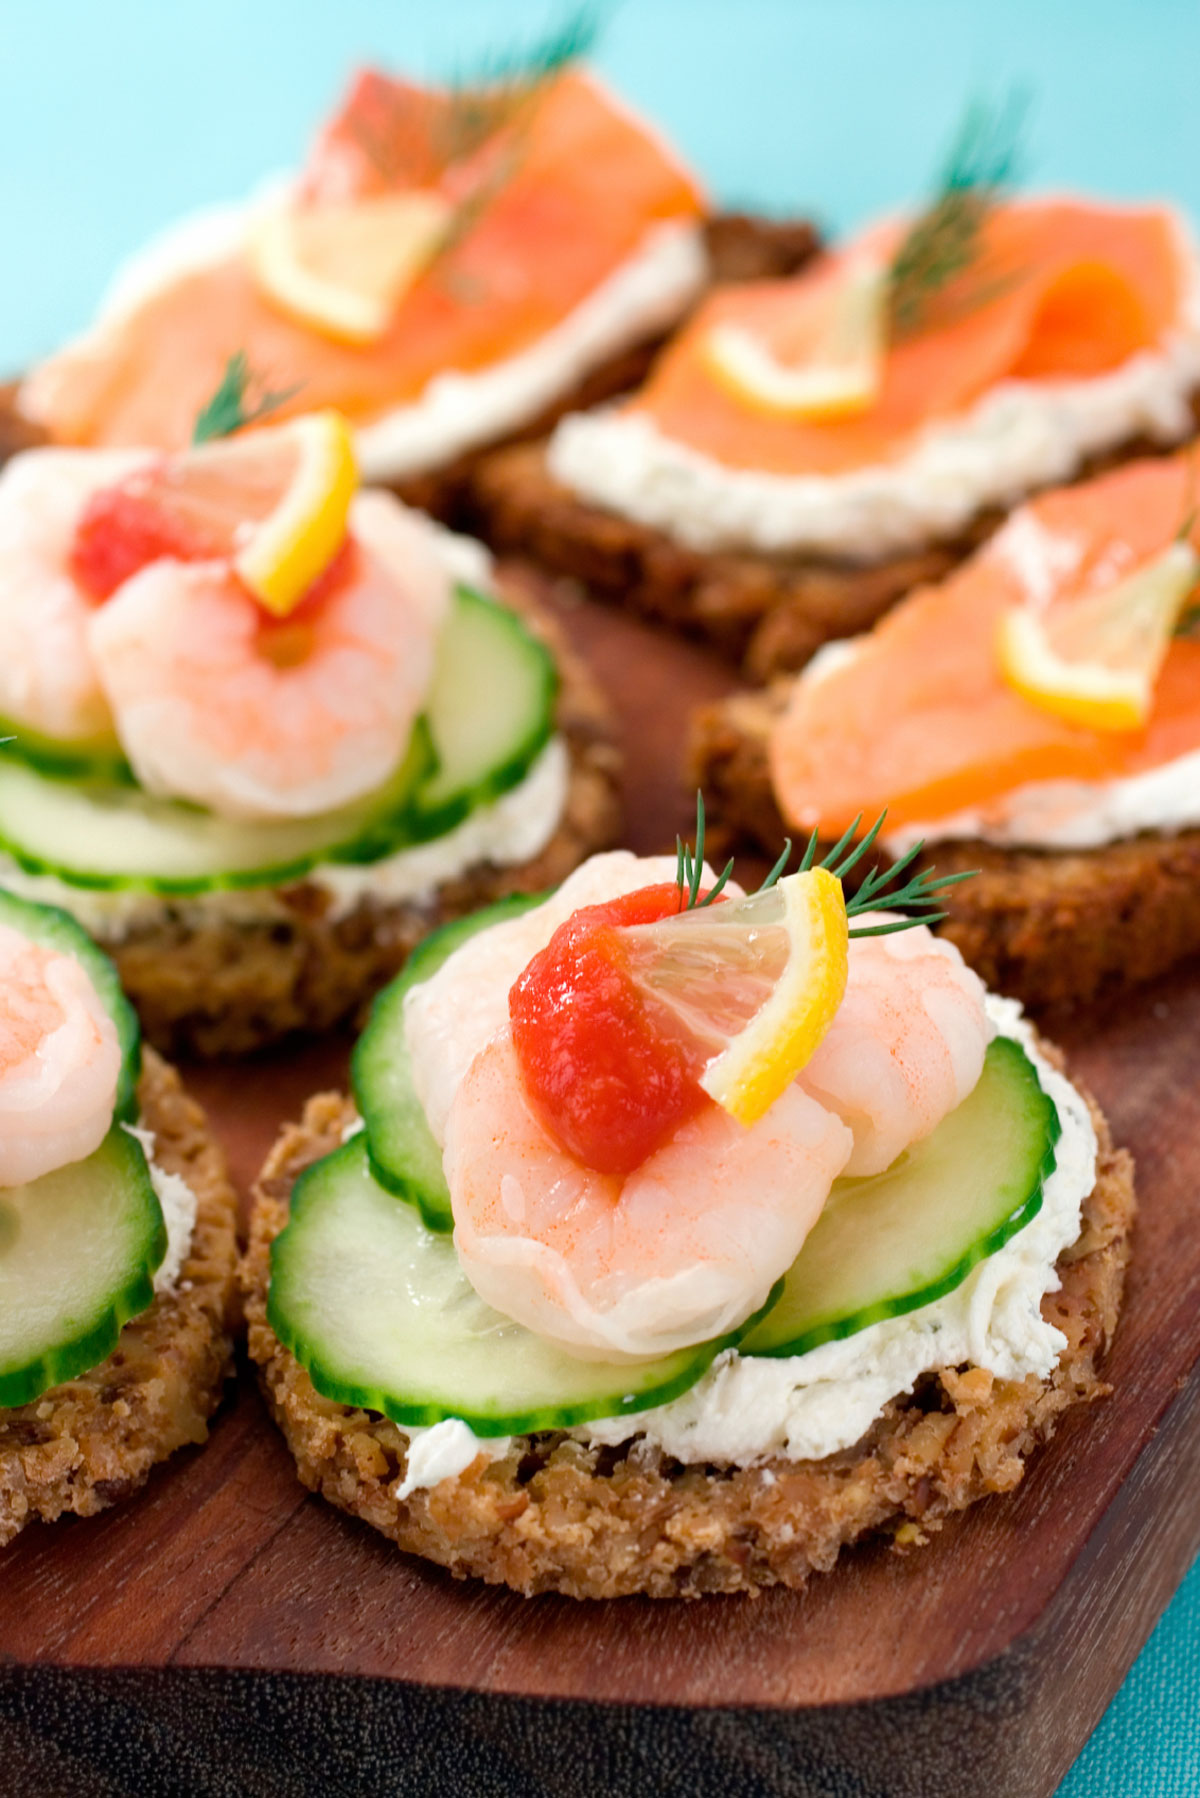 Molto Gourmet Catering - Finger Food ZV57